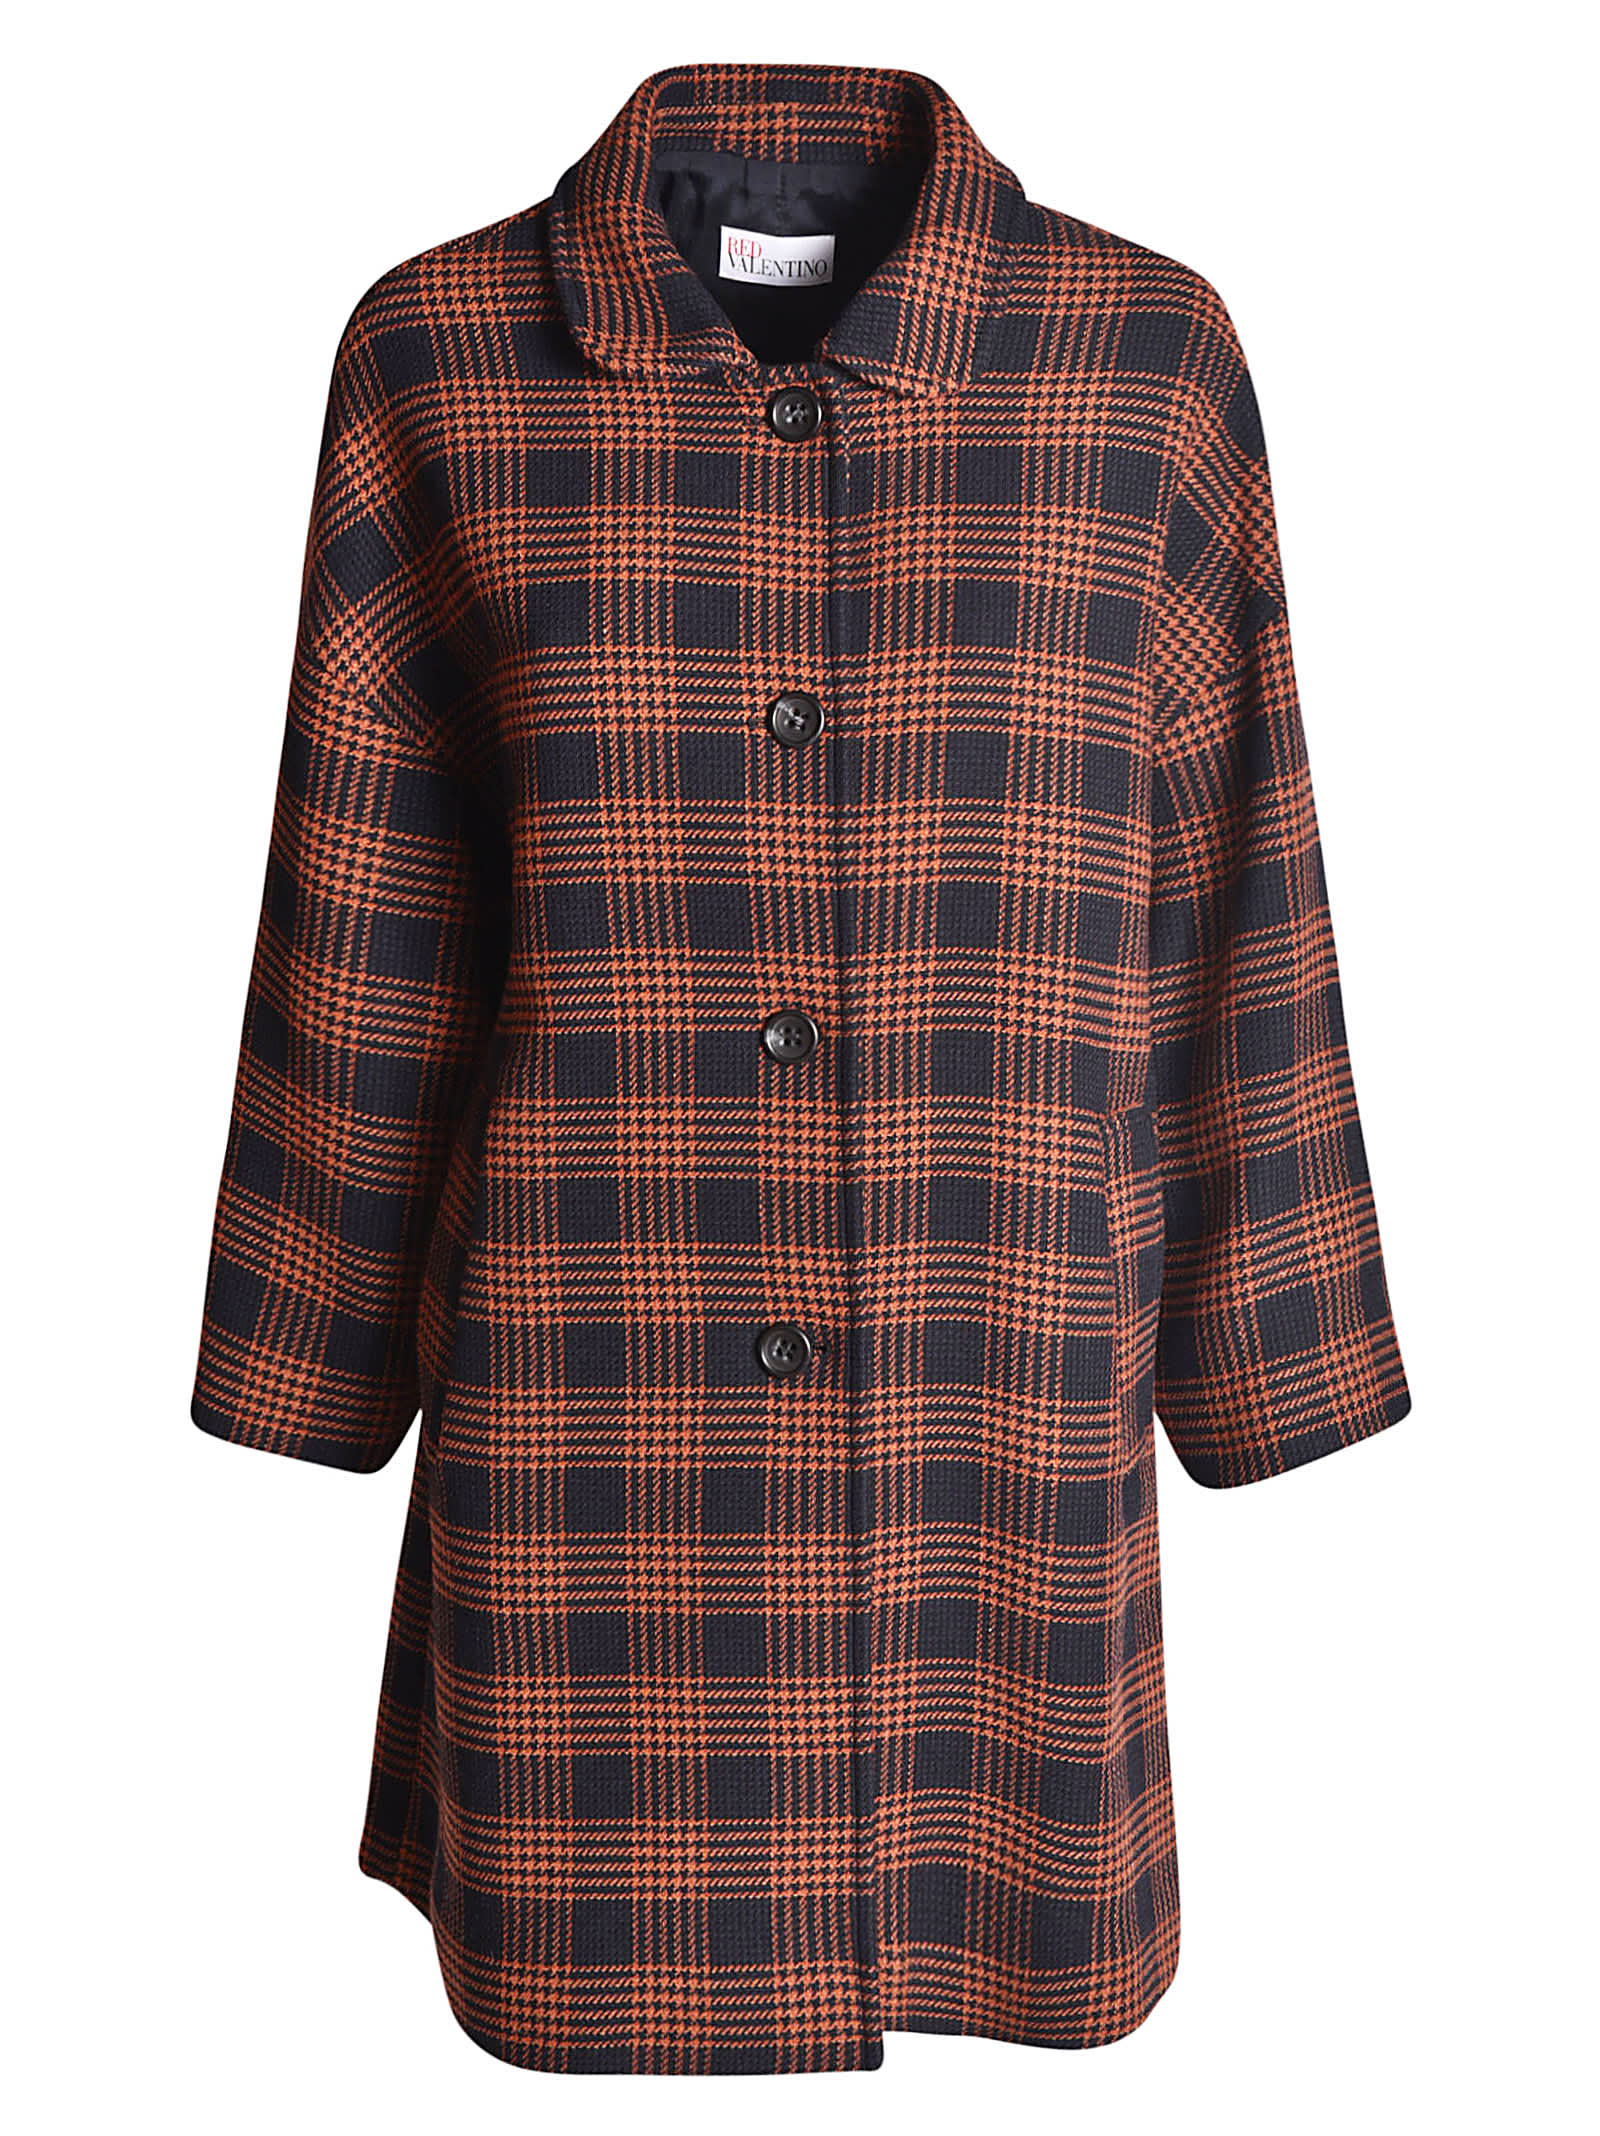 RED Valentino Checked Pattern Coat